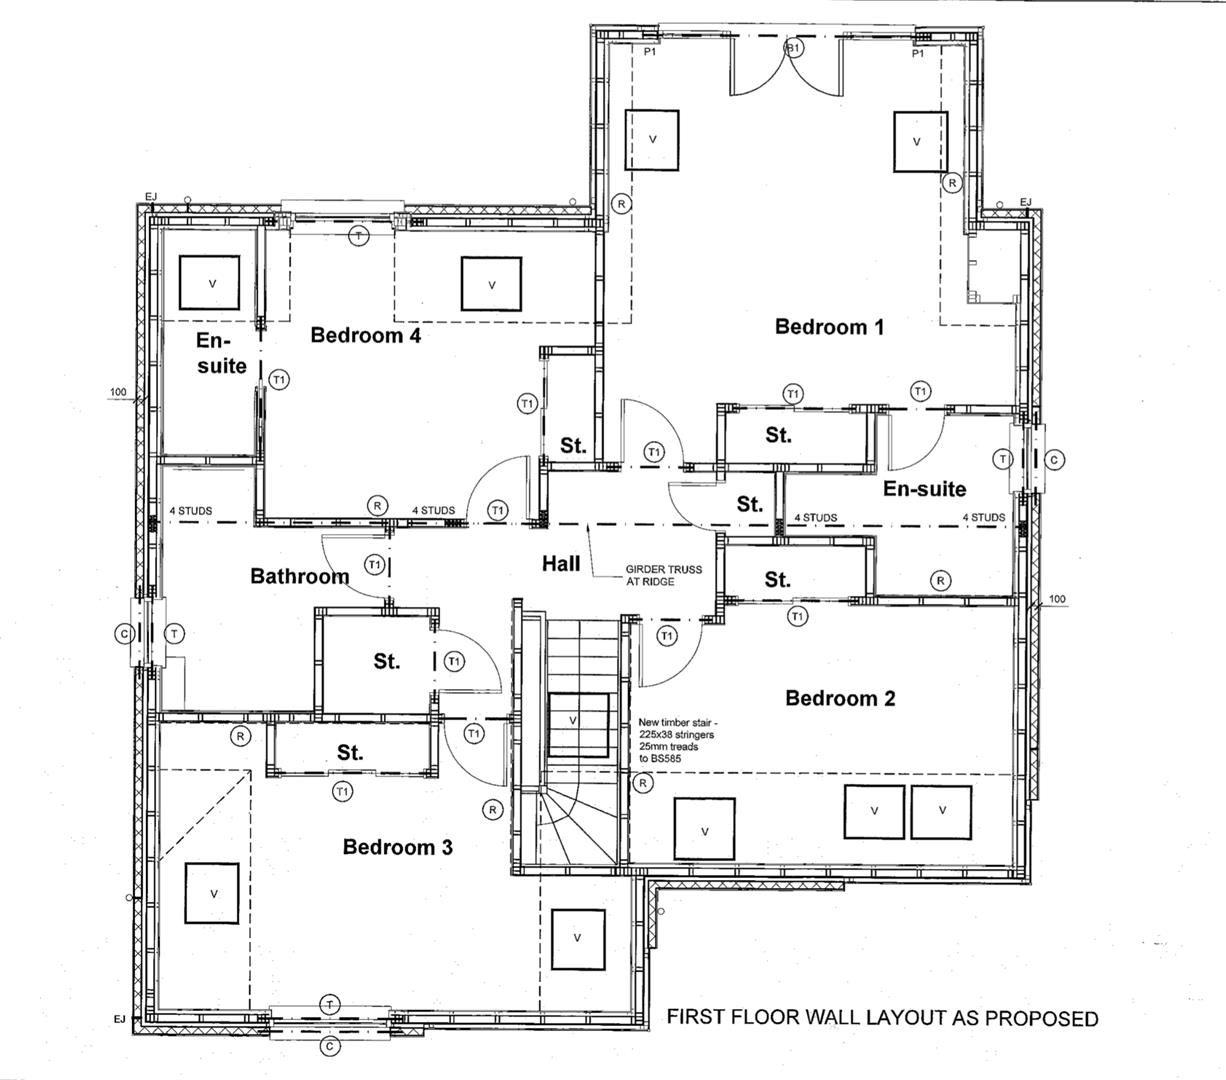 First Floor Wall Layout.png